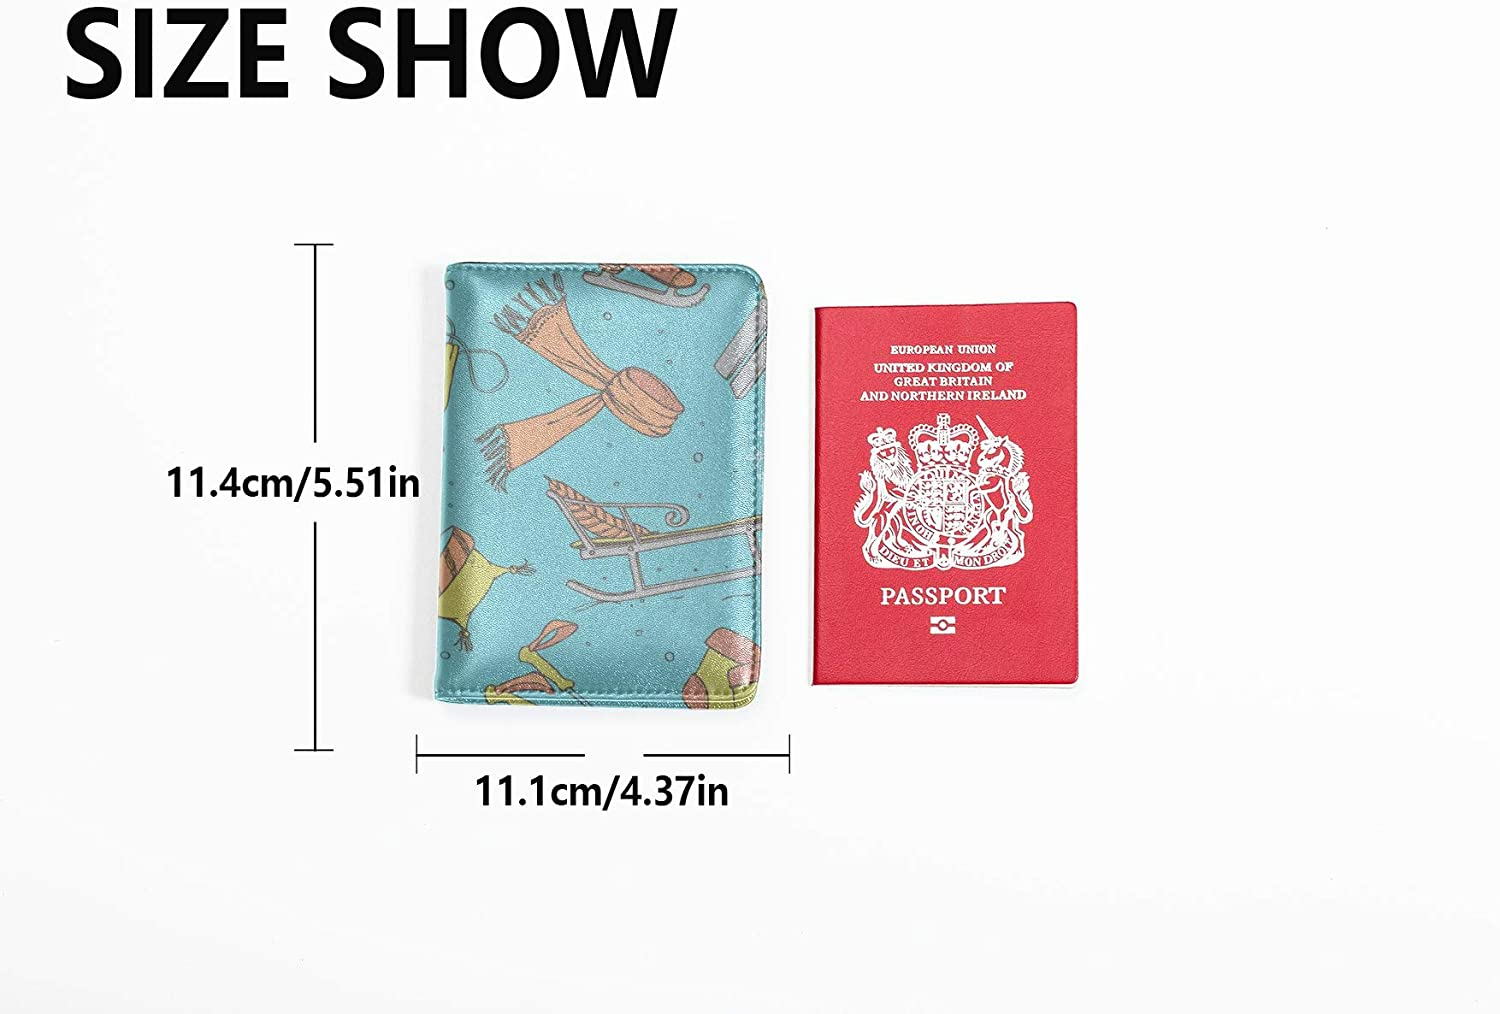 Kids Passport Holder Cover Entertainment Fun Sled Toy Skiing Kids Passport Case Multi Purpose Print Passport Holder Wallet Cover Case Travel Wallets For Unisex 5.51x4.37 Inch